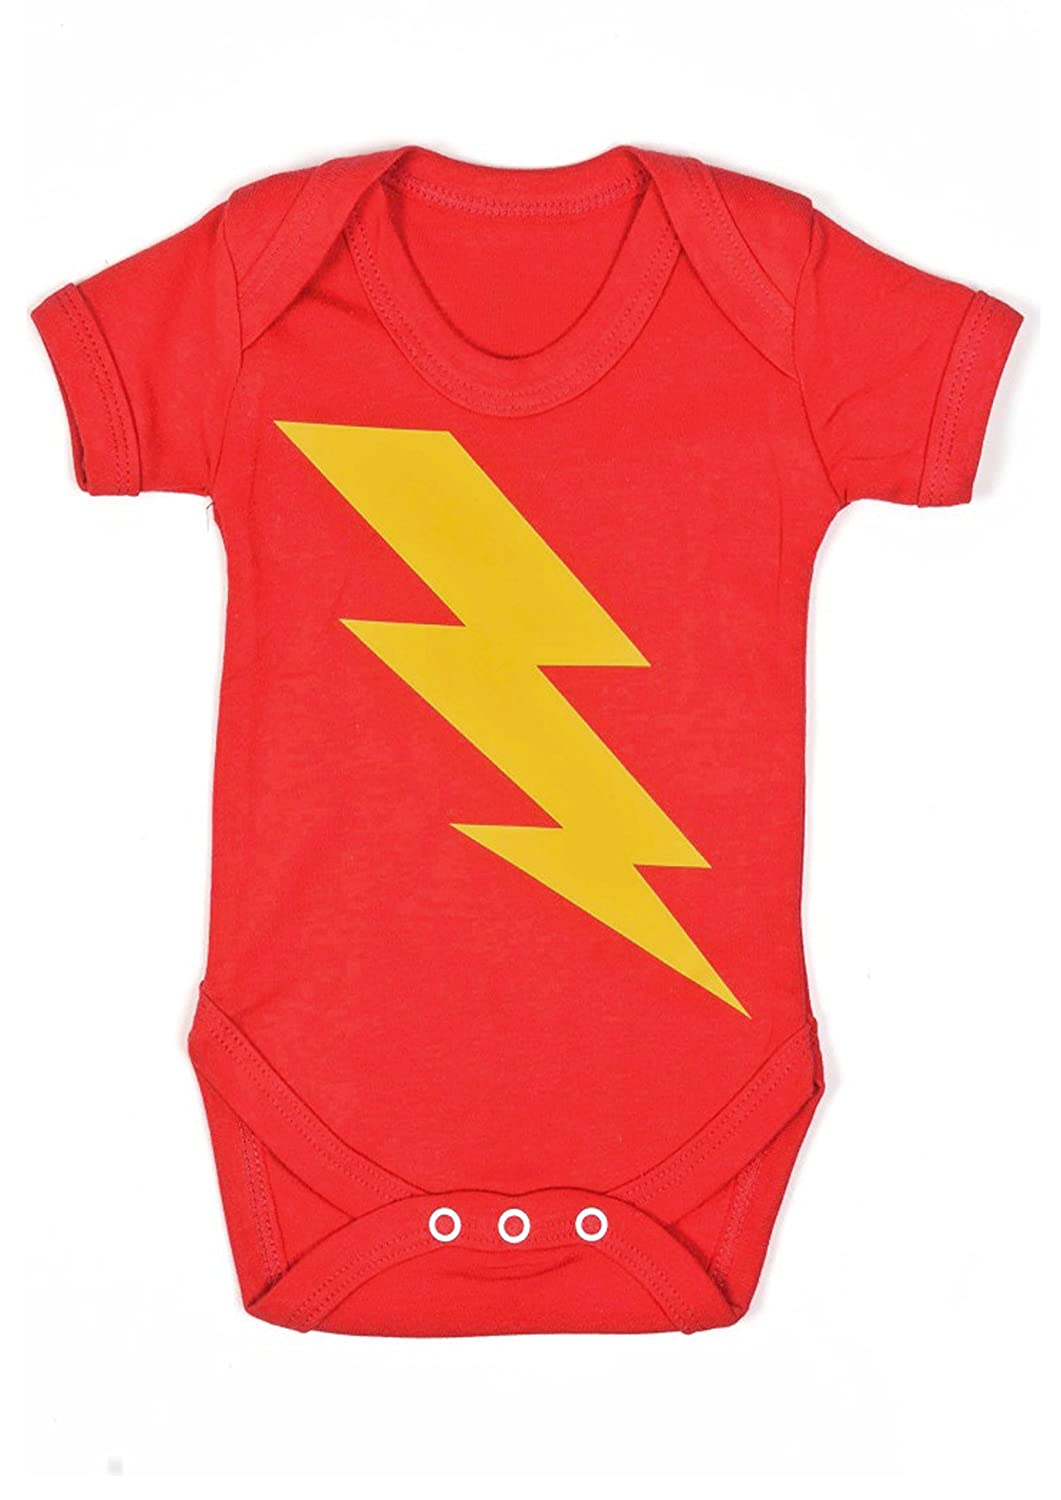 SUPERHERO Baby Grow for Boys or Girls | Lightning Bolt Flash Baby Vest /1 Neutral Bodysuit - Ideal Baby Shower, Twin, Christmas or 1st Birthday Gift | by BABY MOO'S UK (0-3 Months) Baby Moo' s Flash03